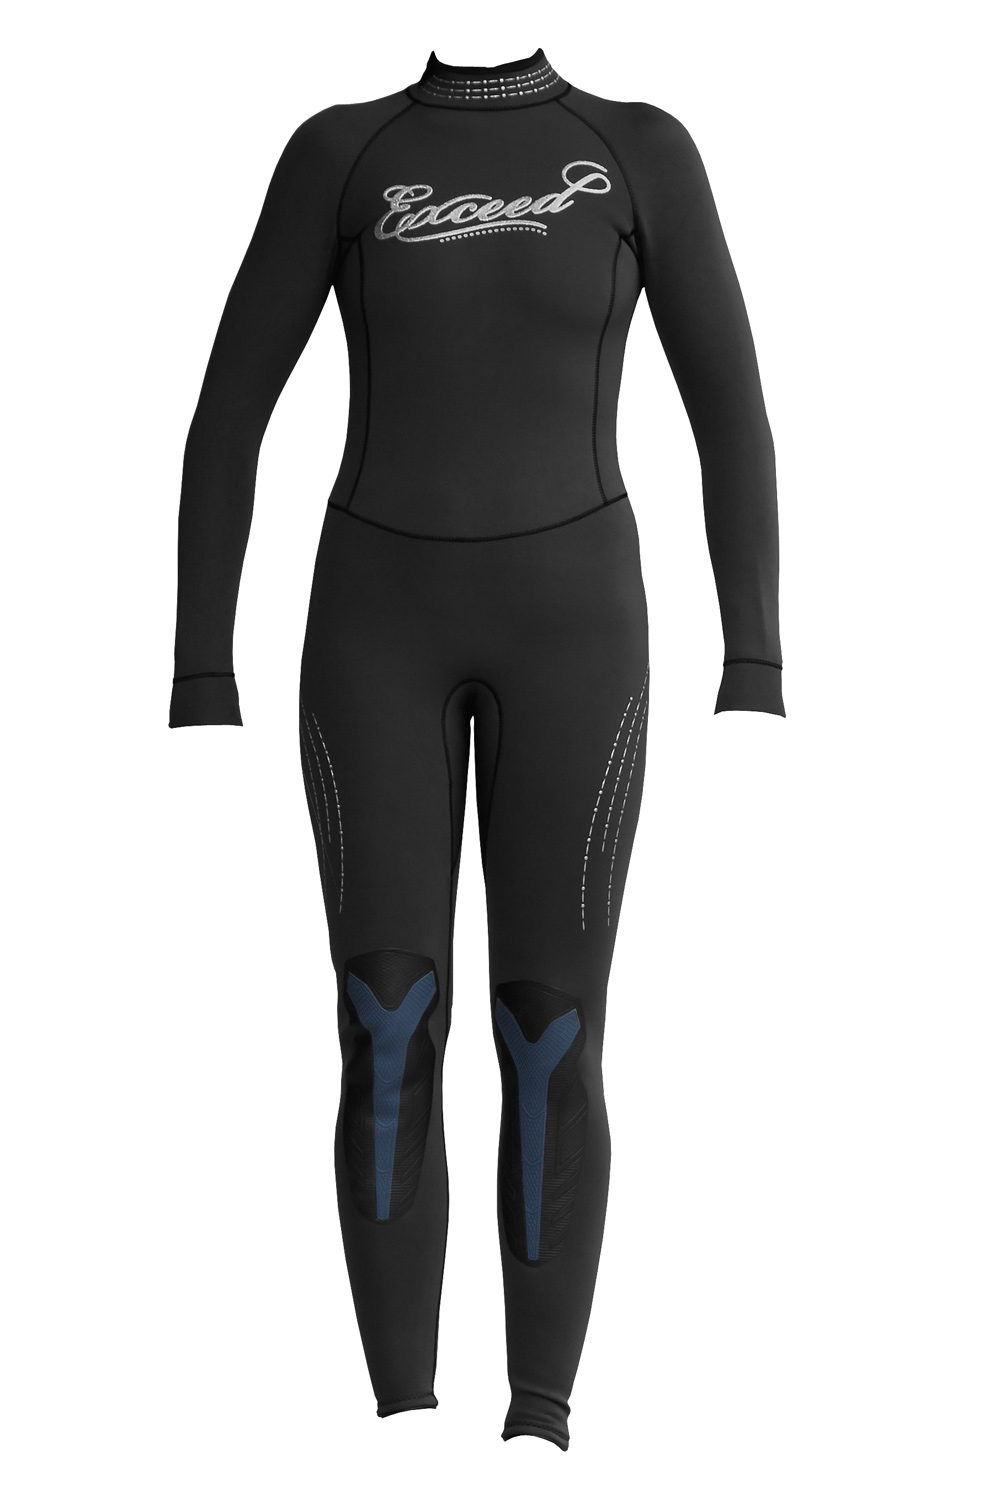 Exceed Eccentric Womens Long Wetsuit